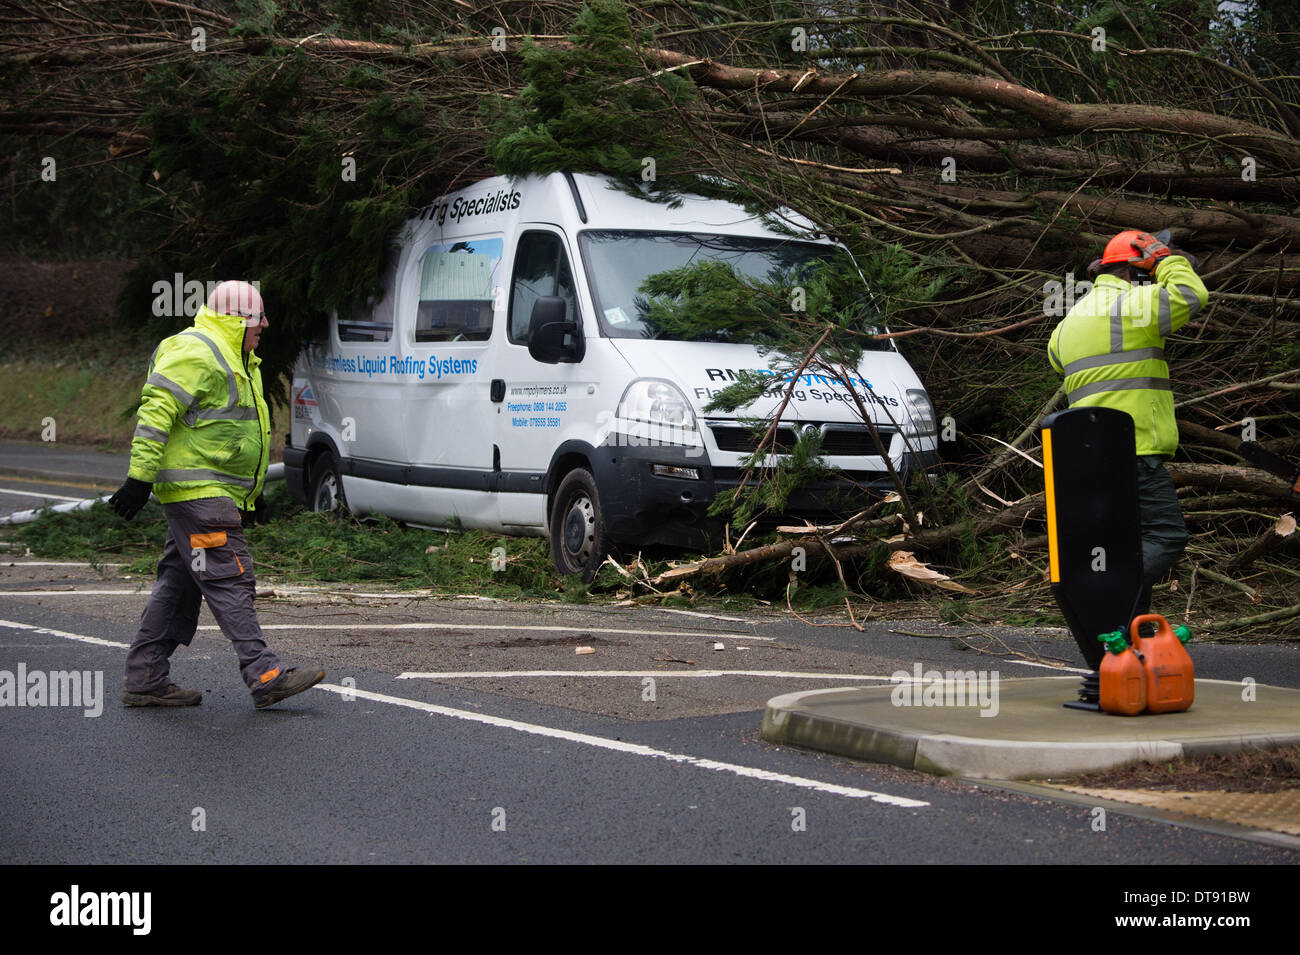 Aberystwyth, Wales, UK. 12th February 2014. Winds gusting up to 107mph are battering the west wales coast at Aberystwyth. A fifty foot Leylandii tree toppled in the winds and crushed a white minibus on the main road into Aberystwyth this afternoon. There are no reports of casualties, The road is closed while workmen chainsaw the tree and remove the debris photo Credit:  keith morris/Alamy Live News - Stock Image